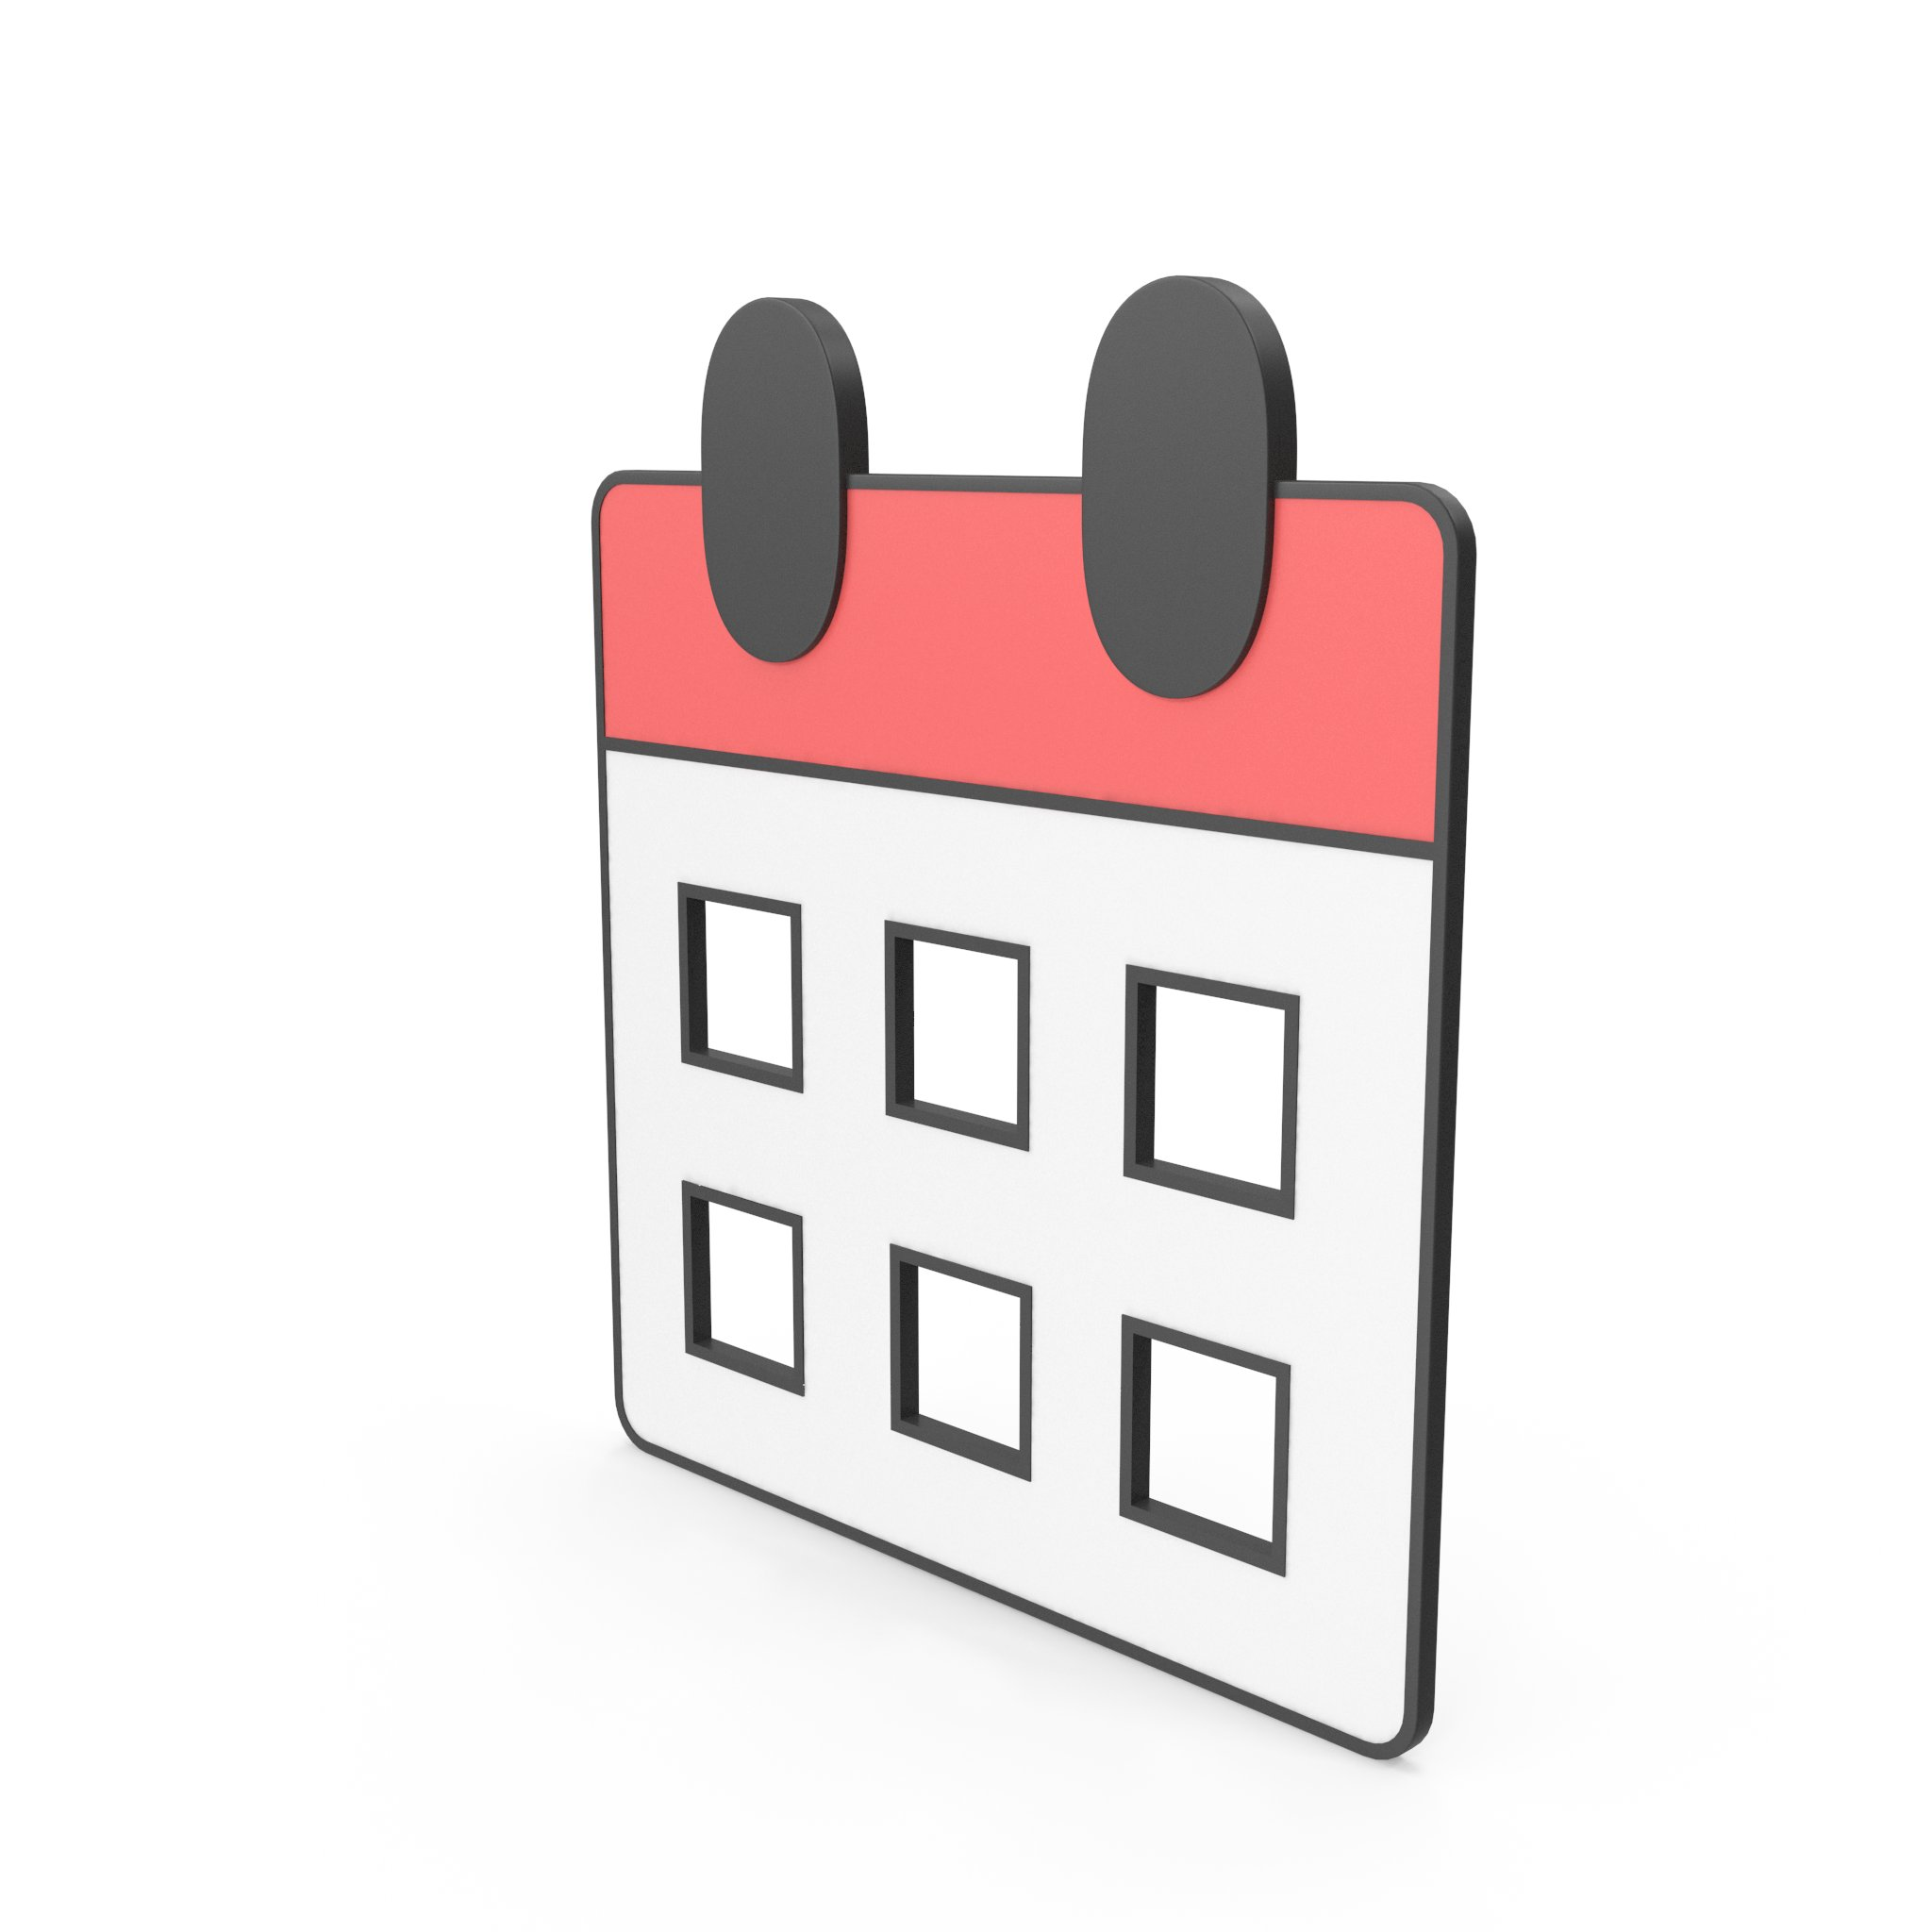 Houston Isd Calendar 2022 23.Spring Branch Isd On Twitter The Sbisd Board Of Trustees Unanimously Approved The Academic Calendars For The Next Two School Years Check Out The 2021 22 And 2022 23 Academic Calendars Here Https T Co 8hp4quufkj Https T Co F2qerr1kla